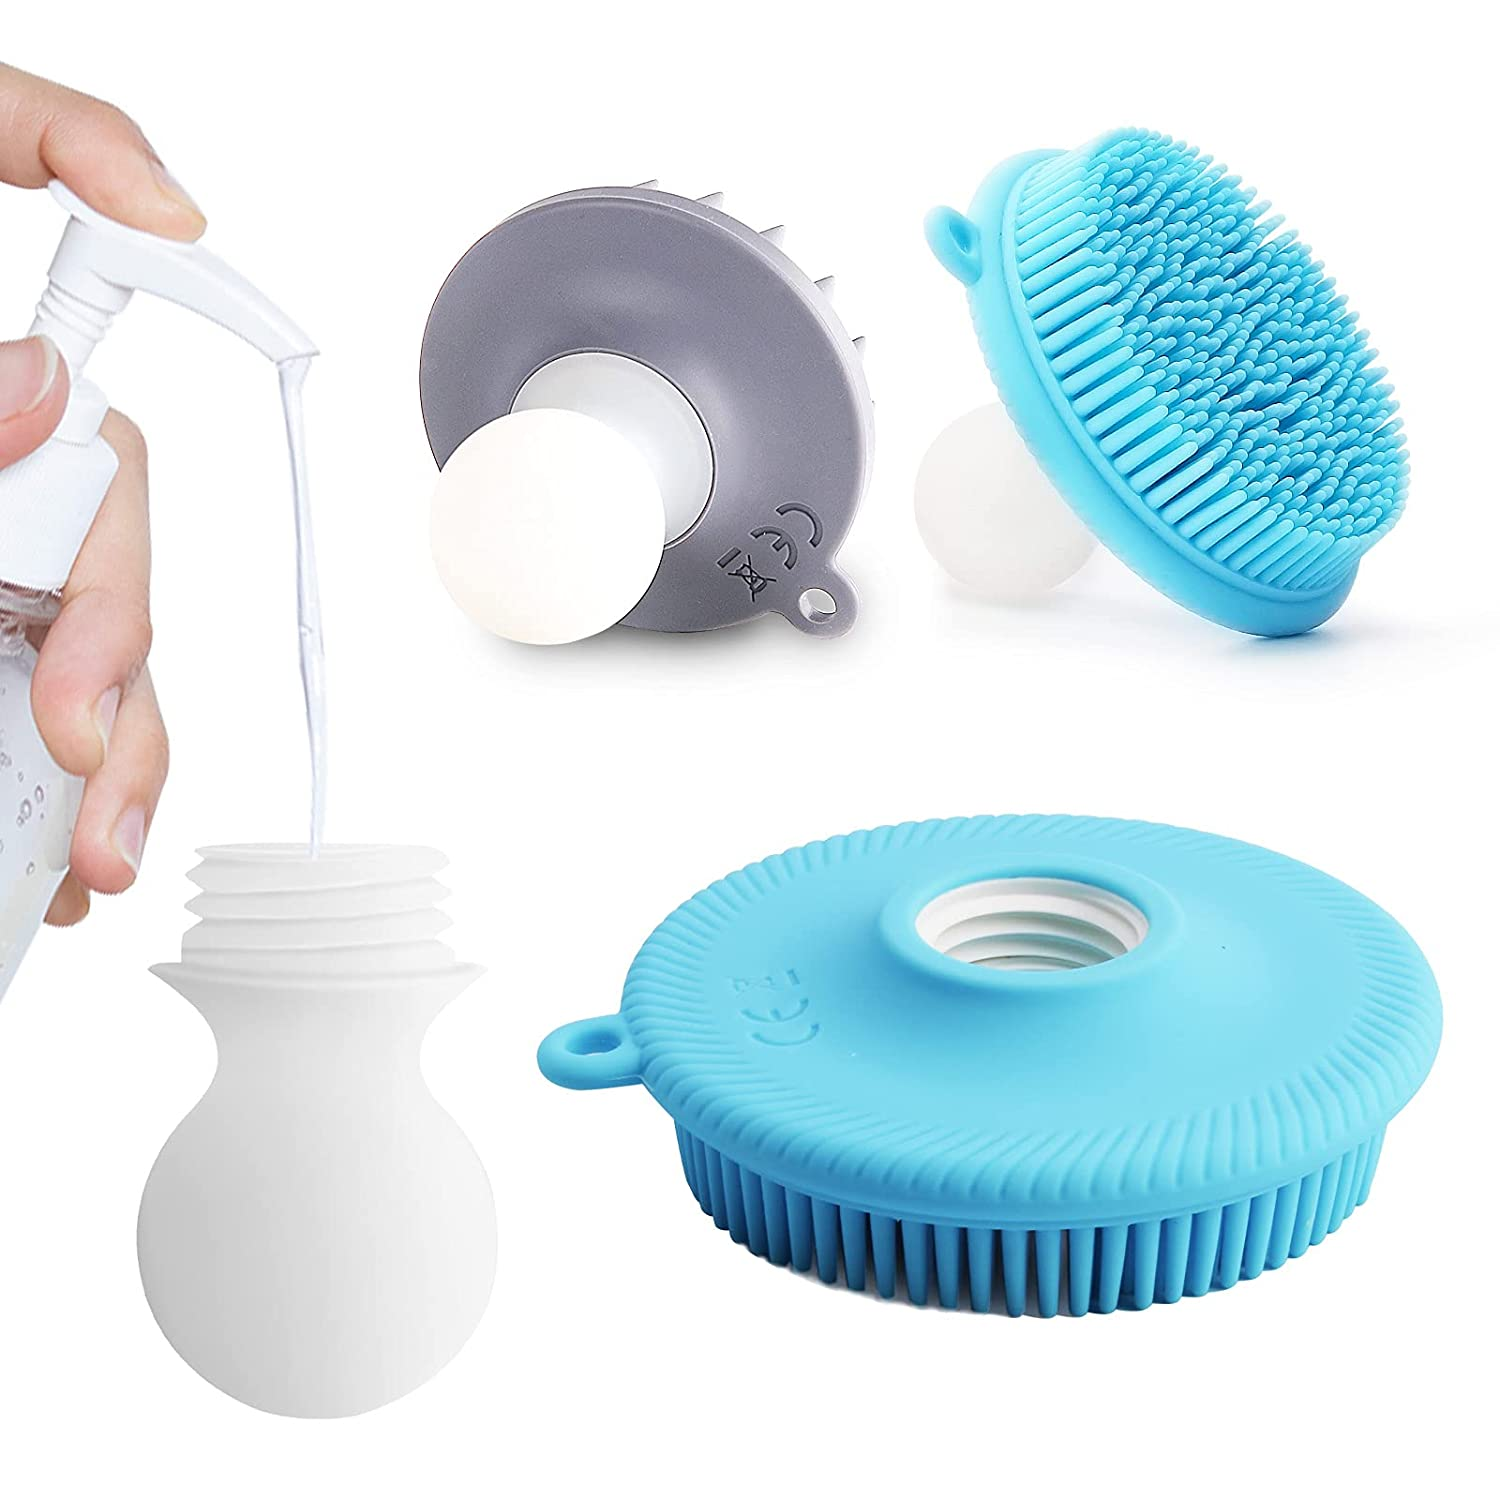 Silicone Body Scrubber Kit Shower Exfoliating Online Our shop most popular limited product Brush Hai Scrub